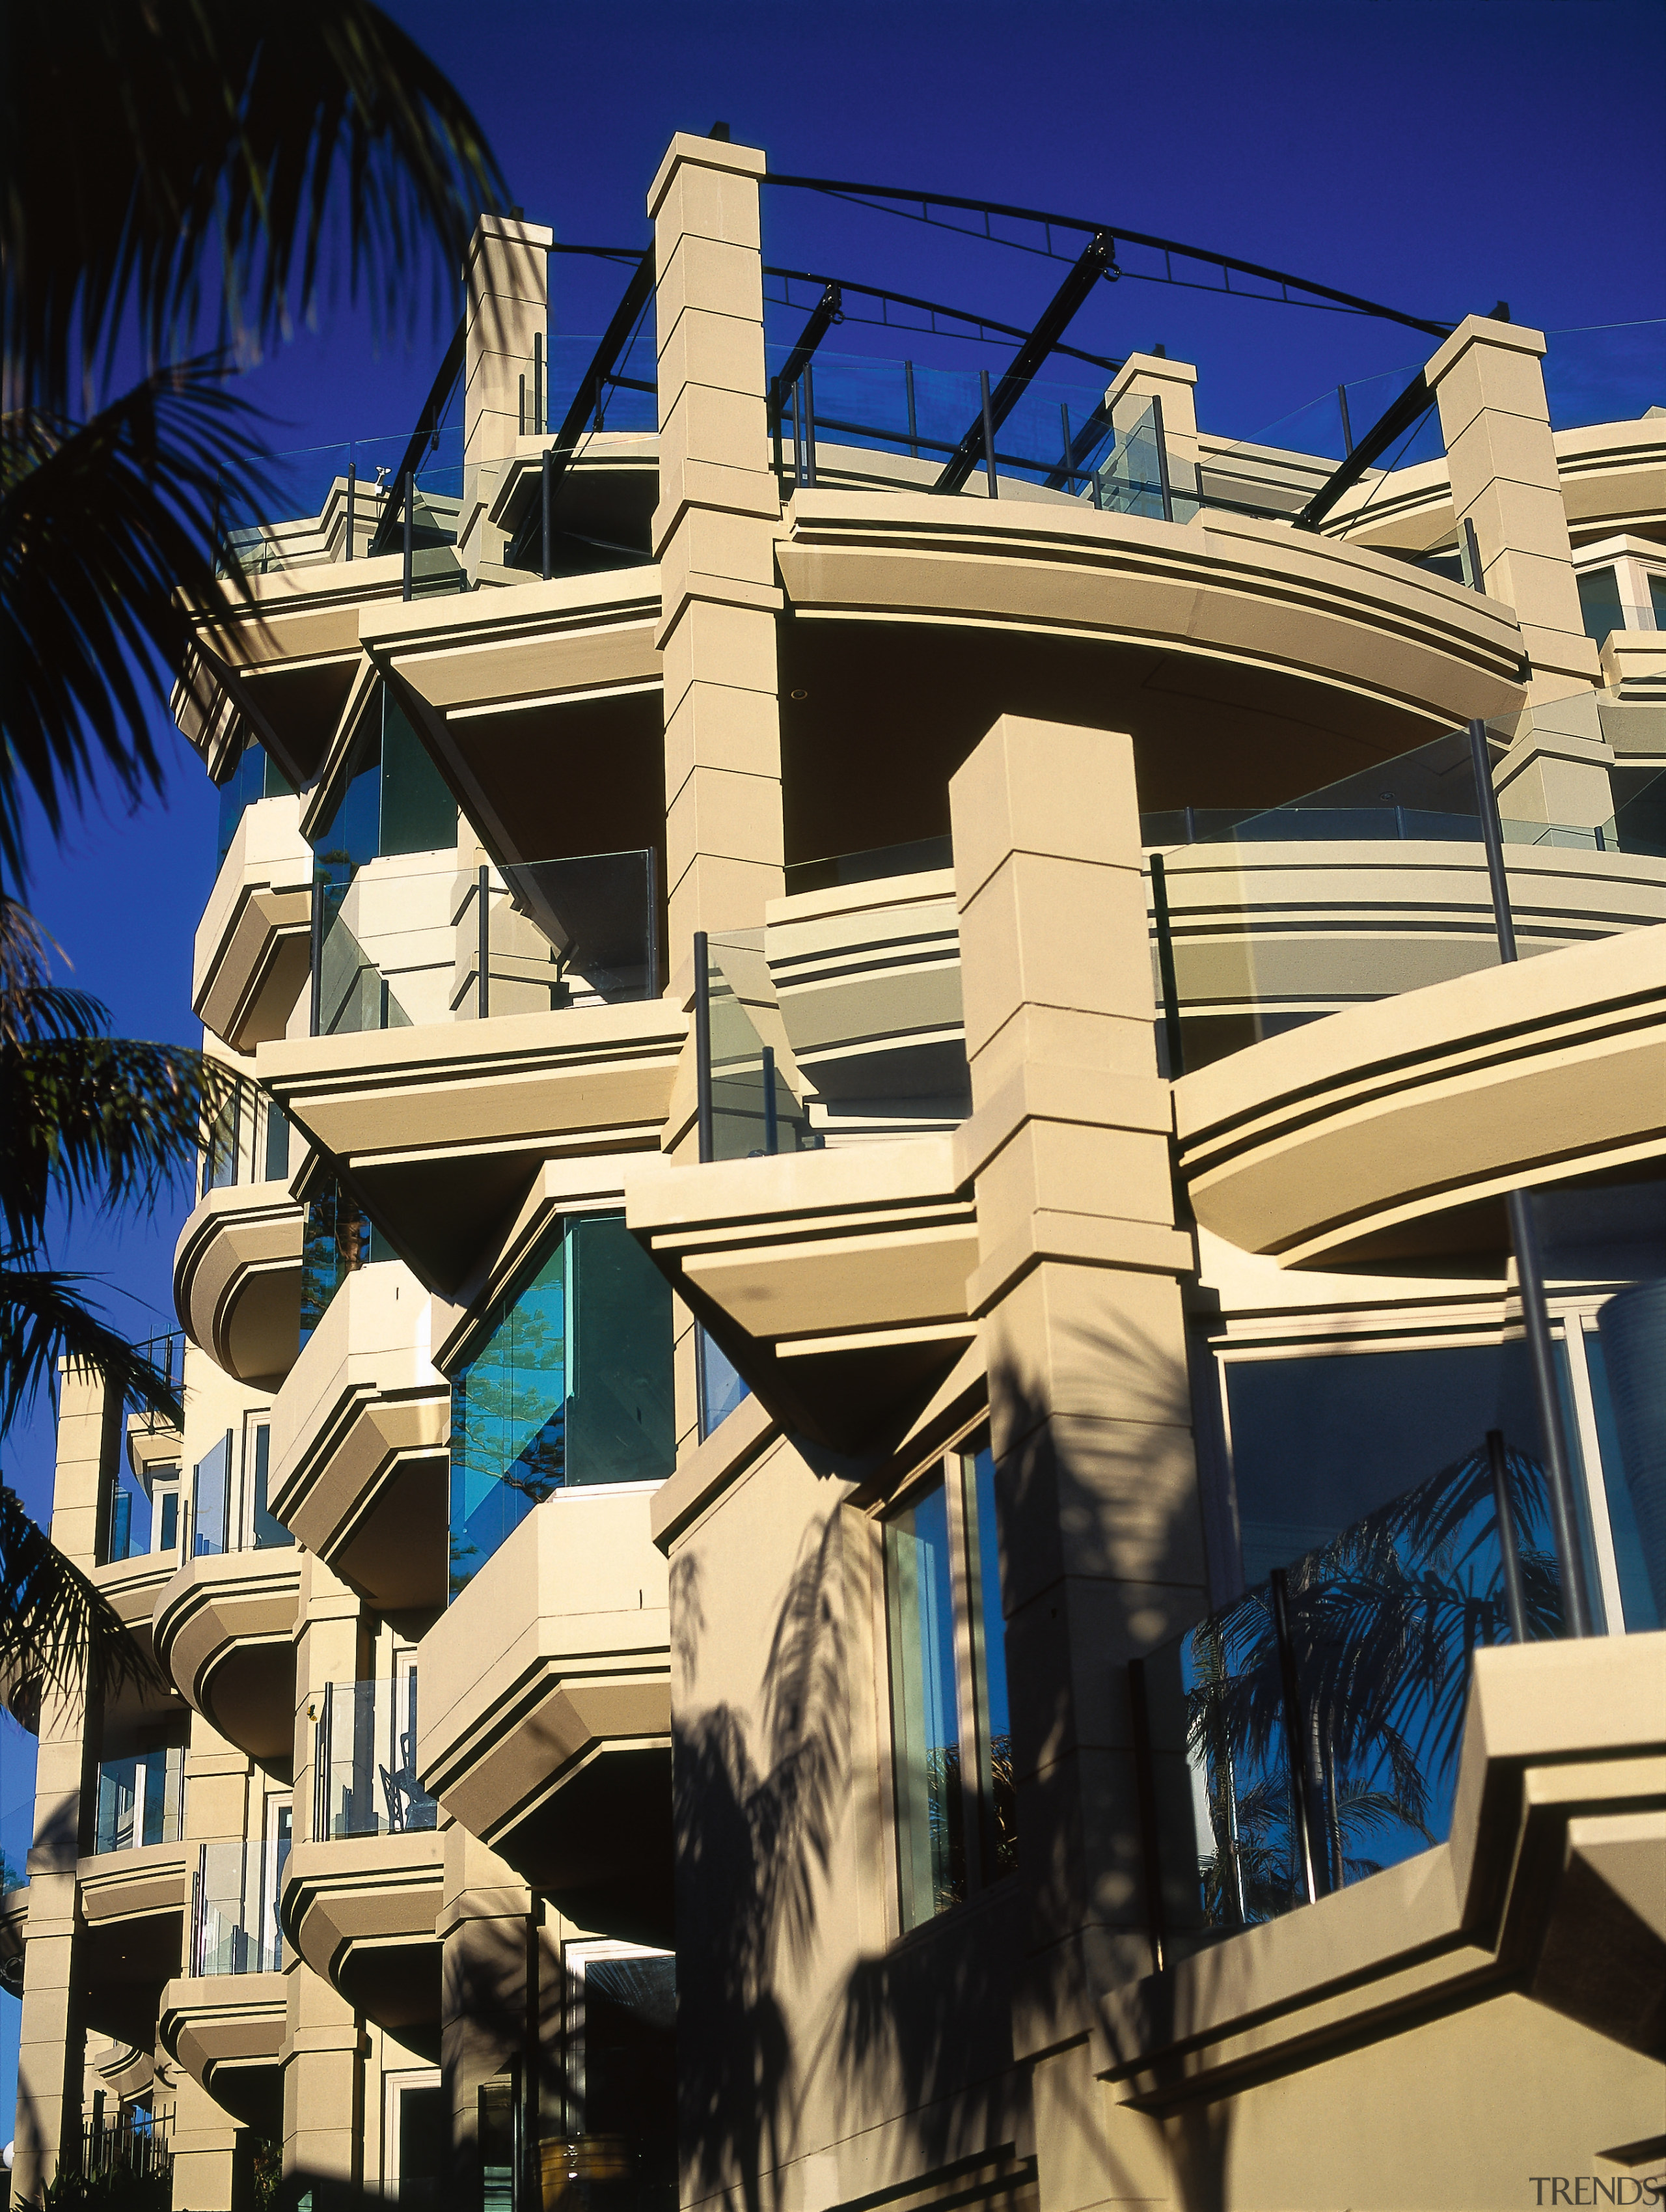 close up of apartments - close up of architecture, building, condominium, facade, house, residential area, sky, window, black